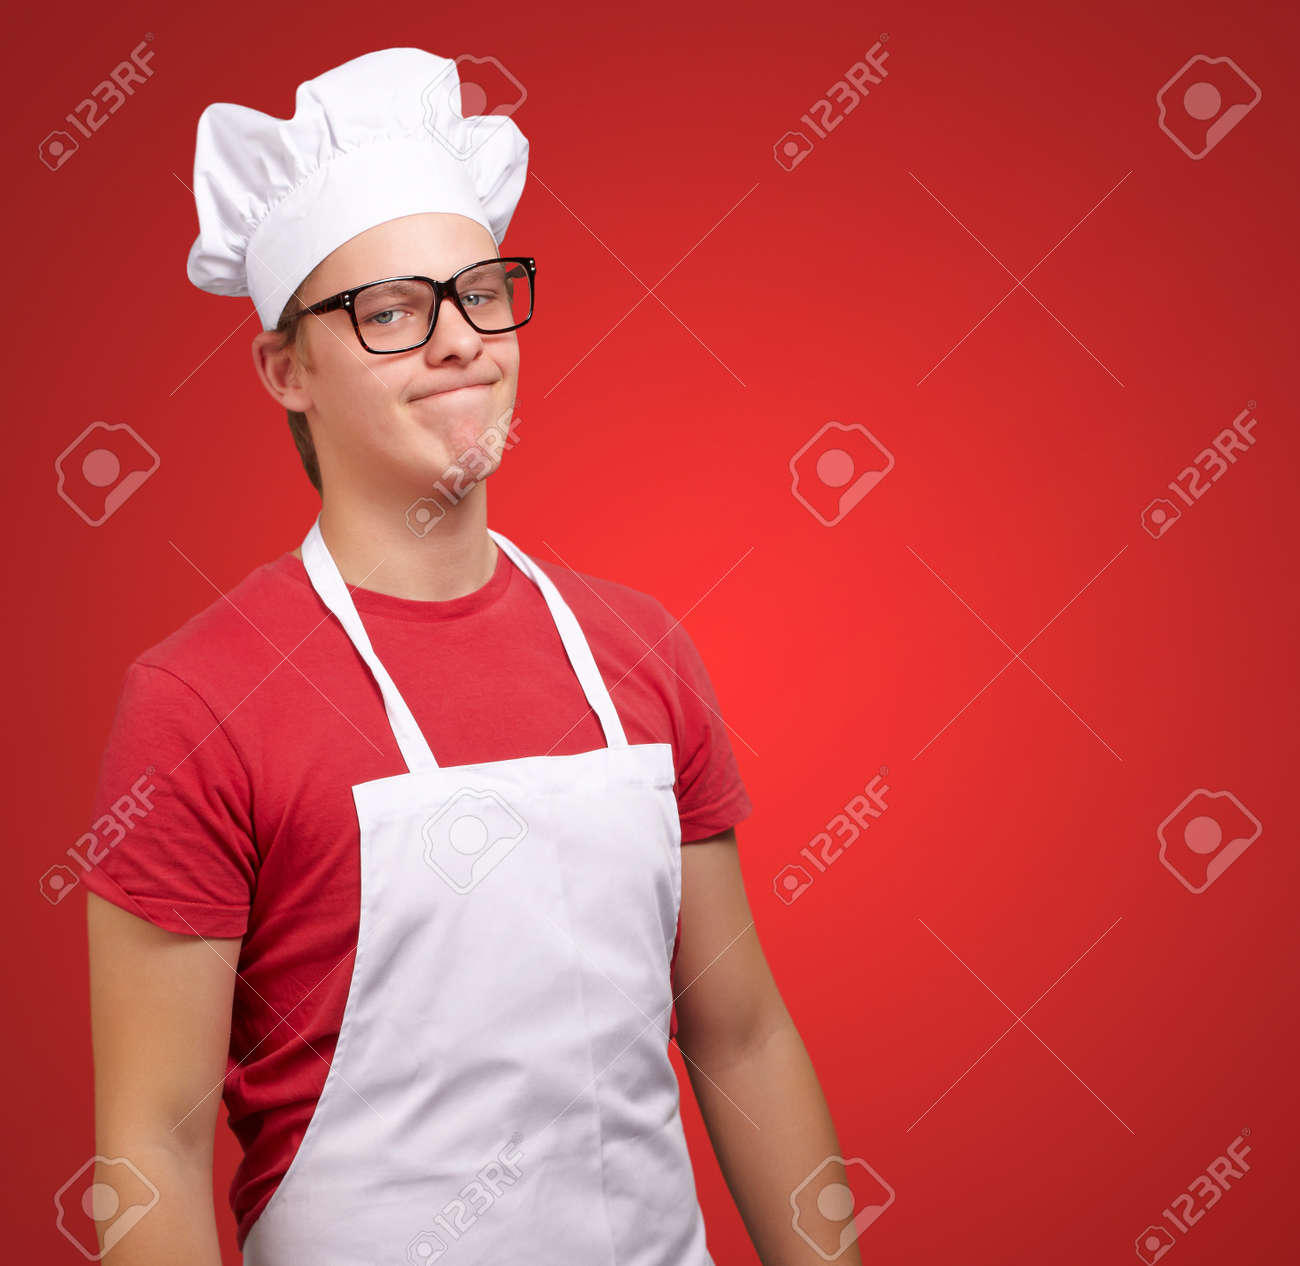 Portrait Of A Unhappy Man On Red Background Stock Photo - 15106204